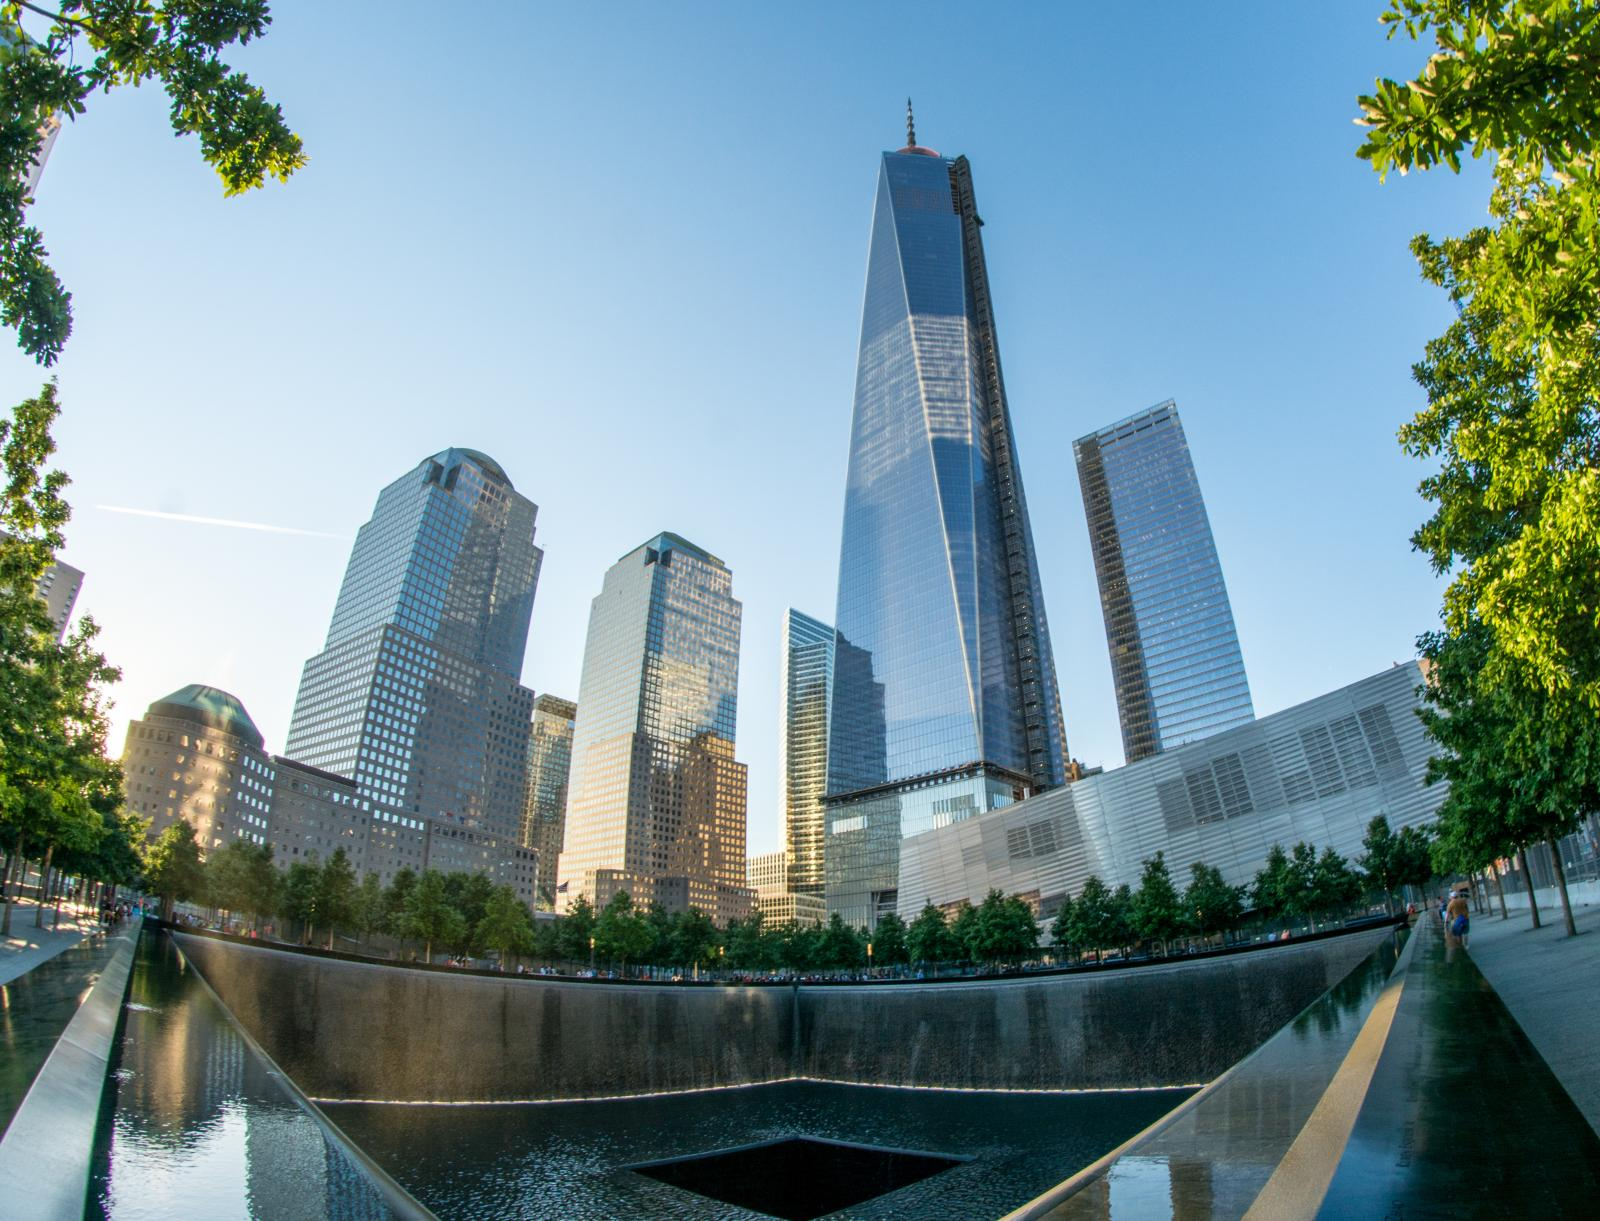 La Zona Cero de Nueva York y el One World Trade Center